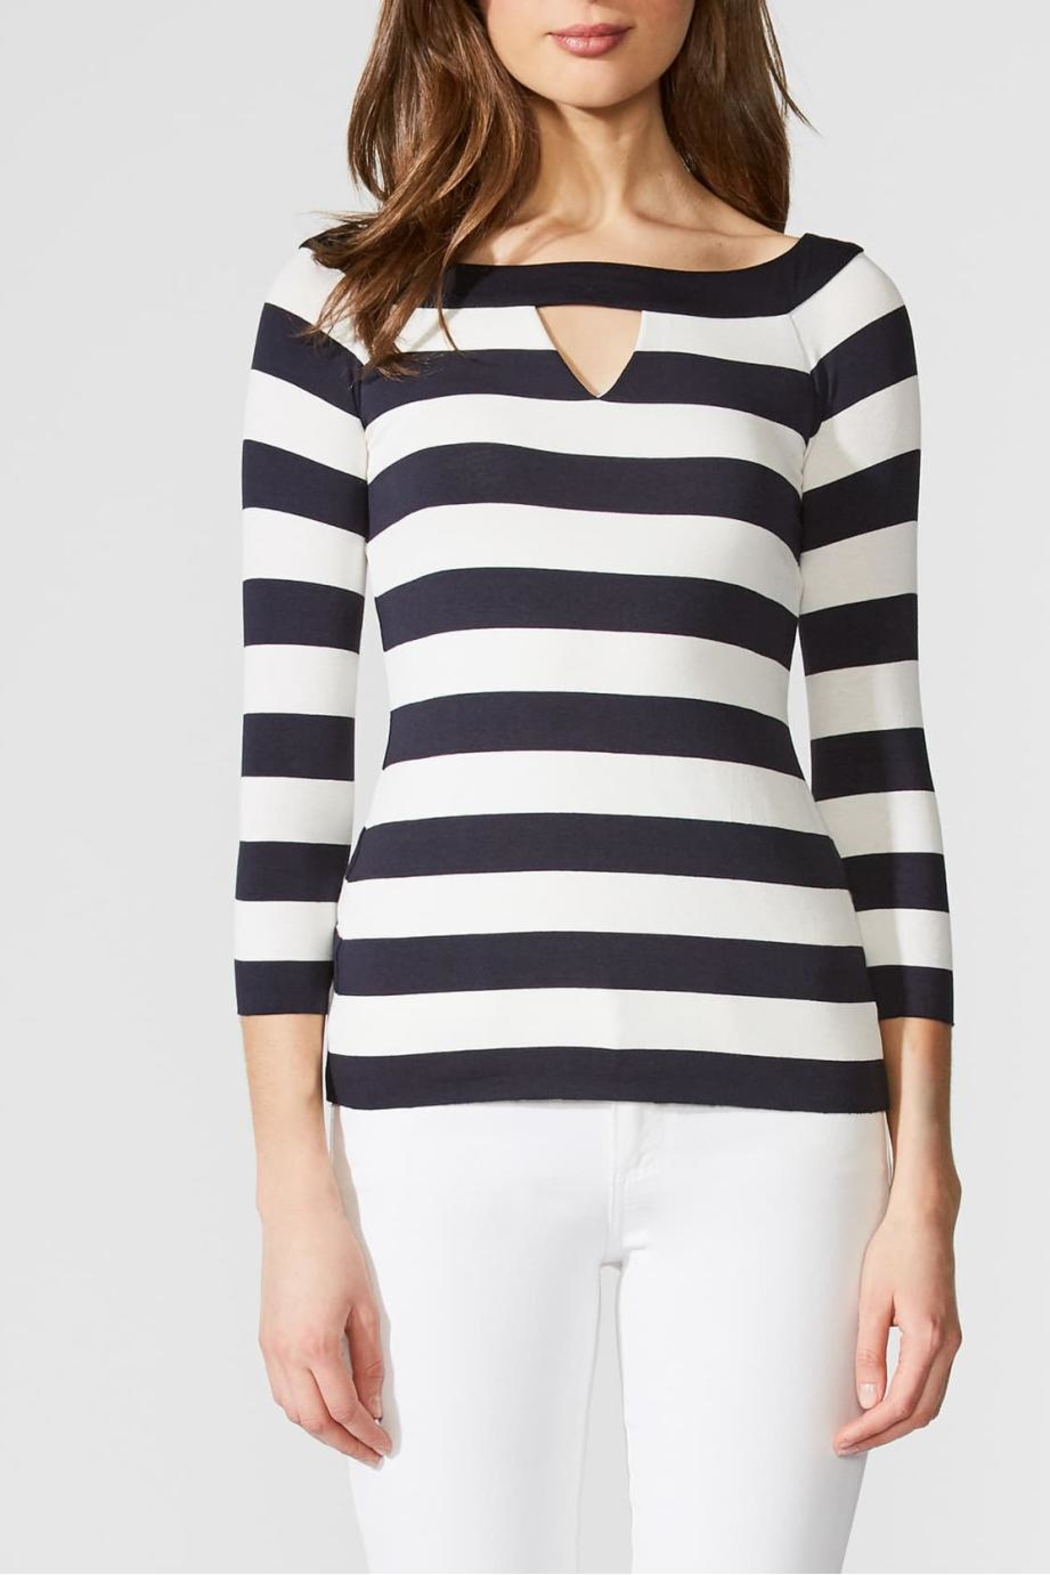 Bailey 44 Stripe Boatneck Top - Front Full Image